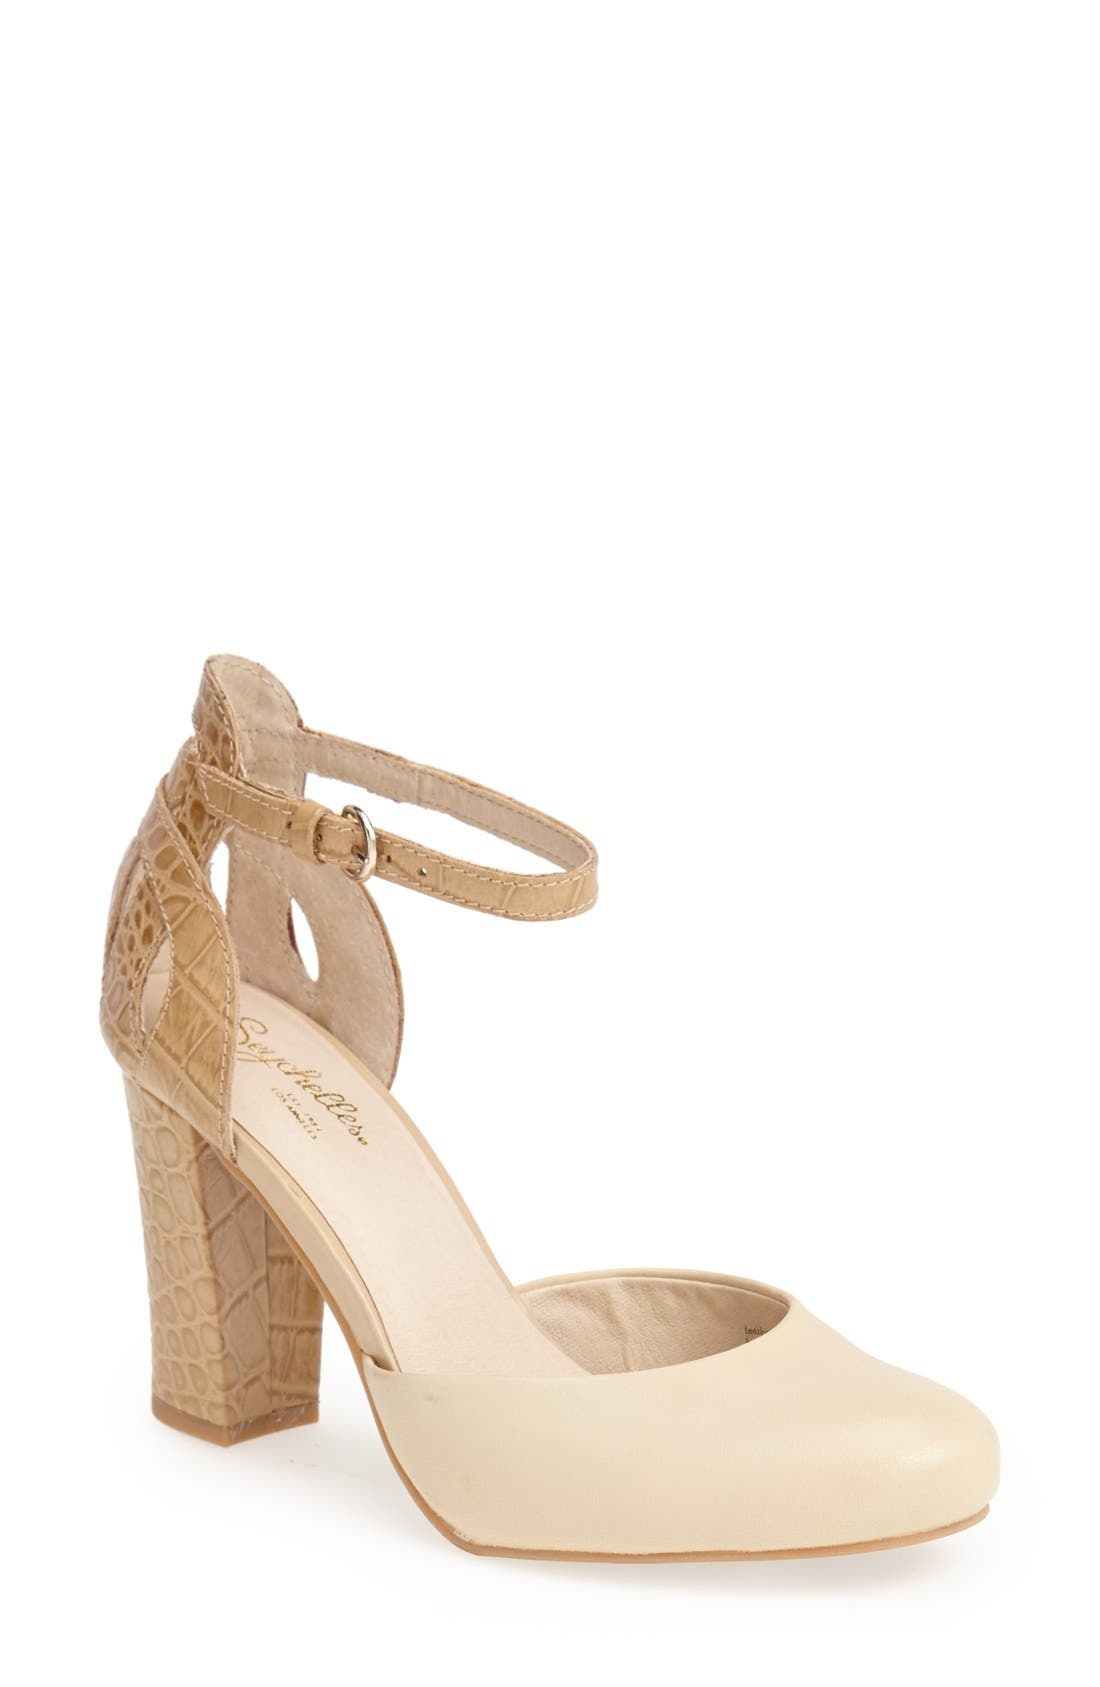 Alternate Image 1 Selected - Seychelles 'Conquer' Ankle Strap d'Orsay Pump (Women)